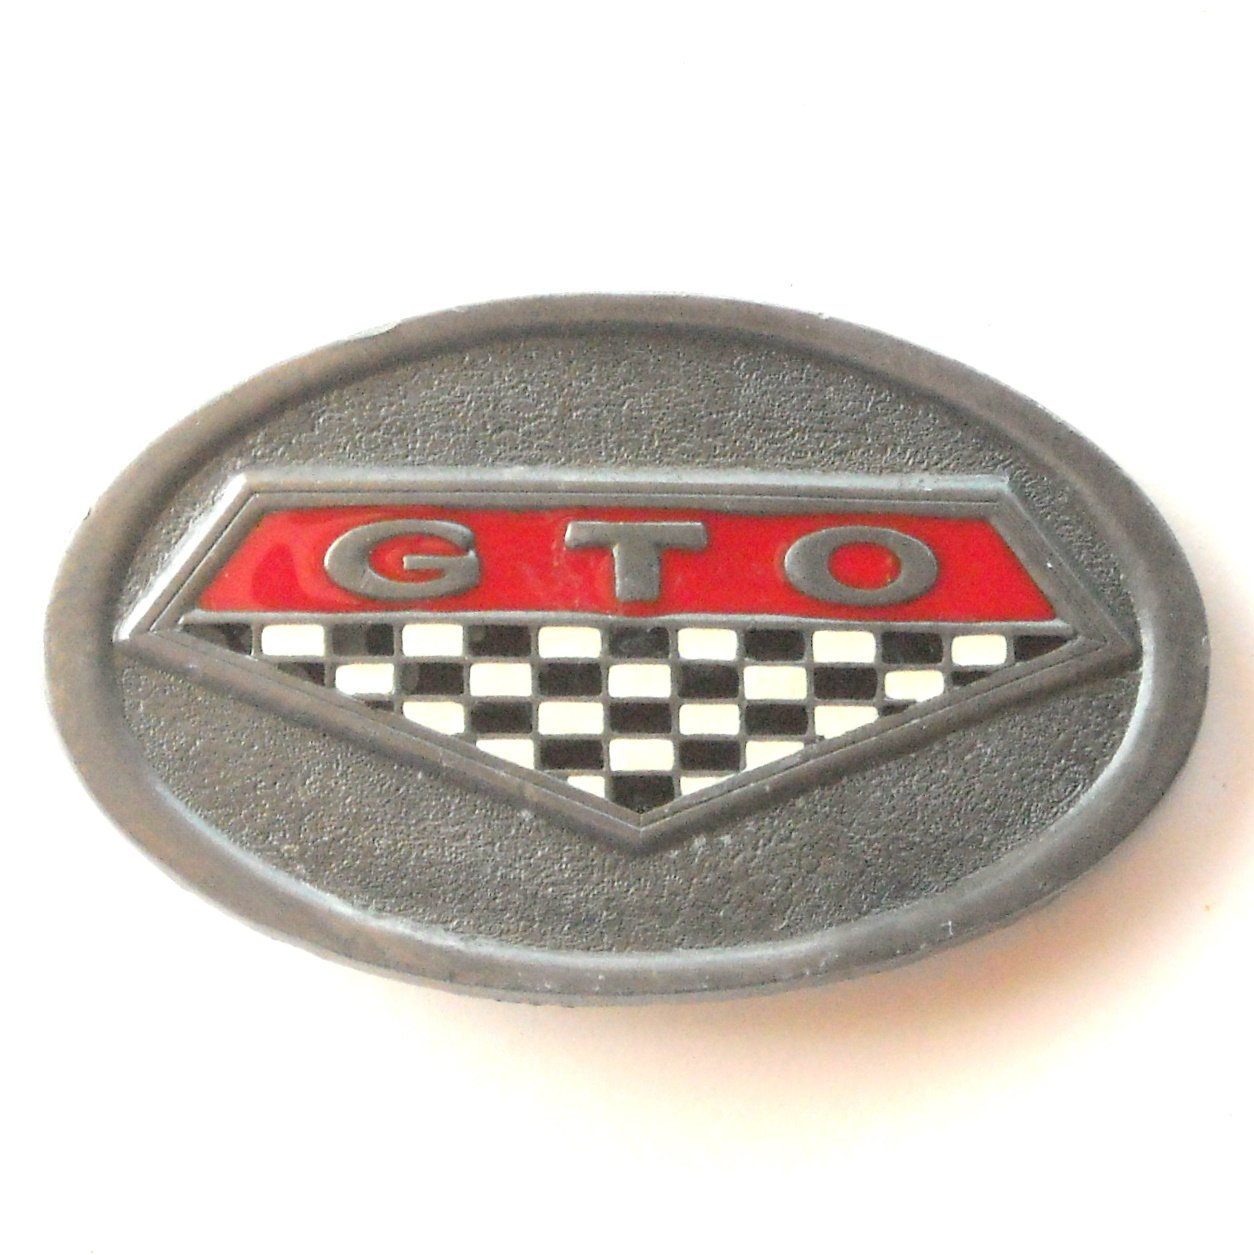 C+J 1996 Pontiac GTO C&J Inc pewter alloy belt buckle